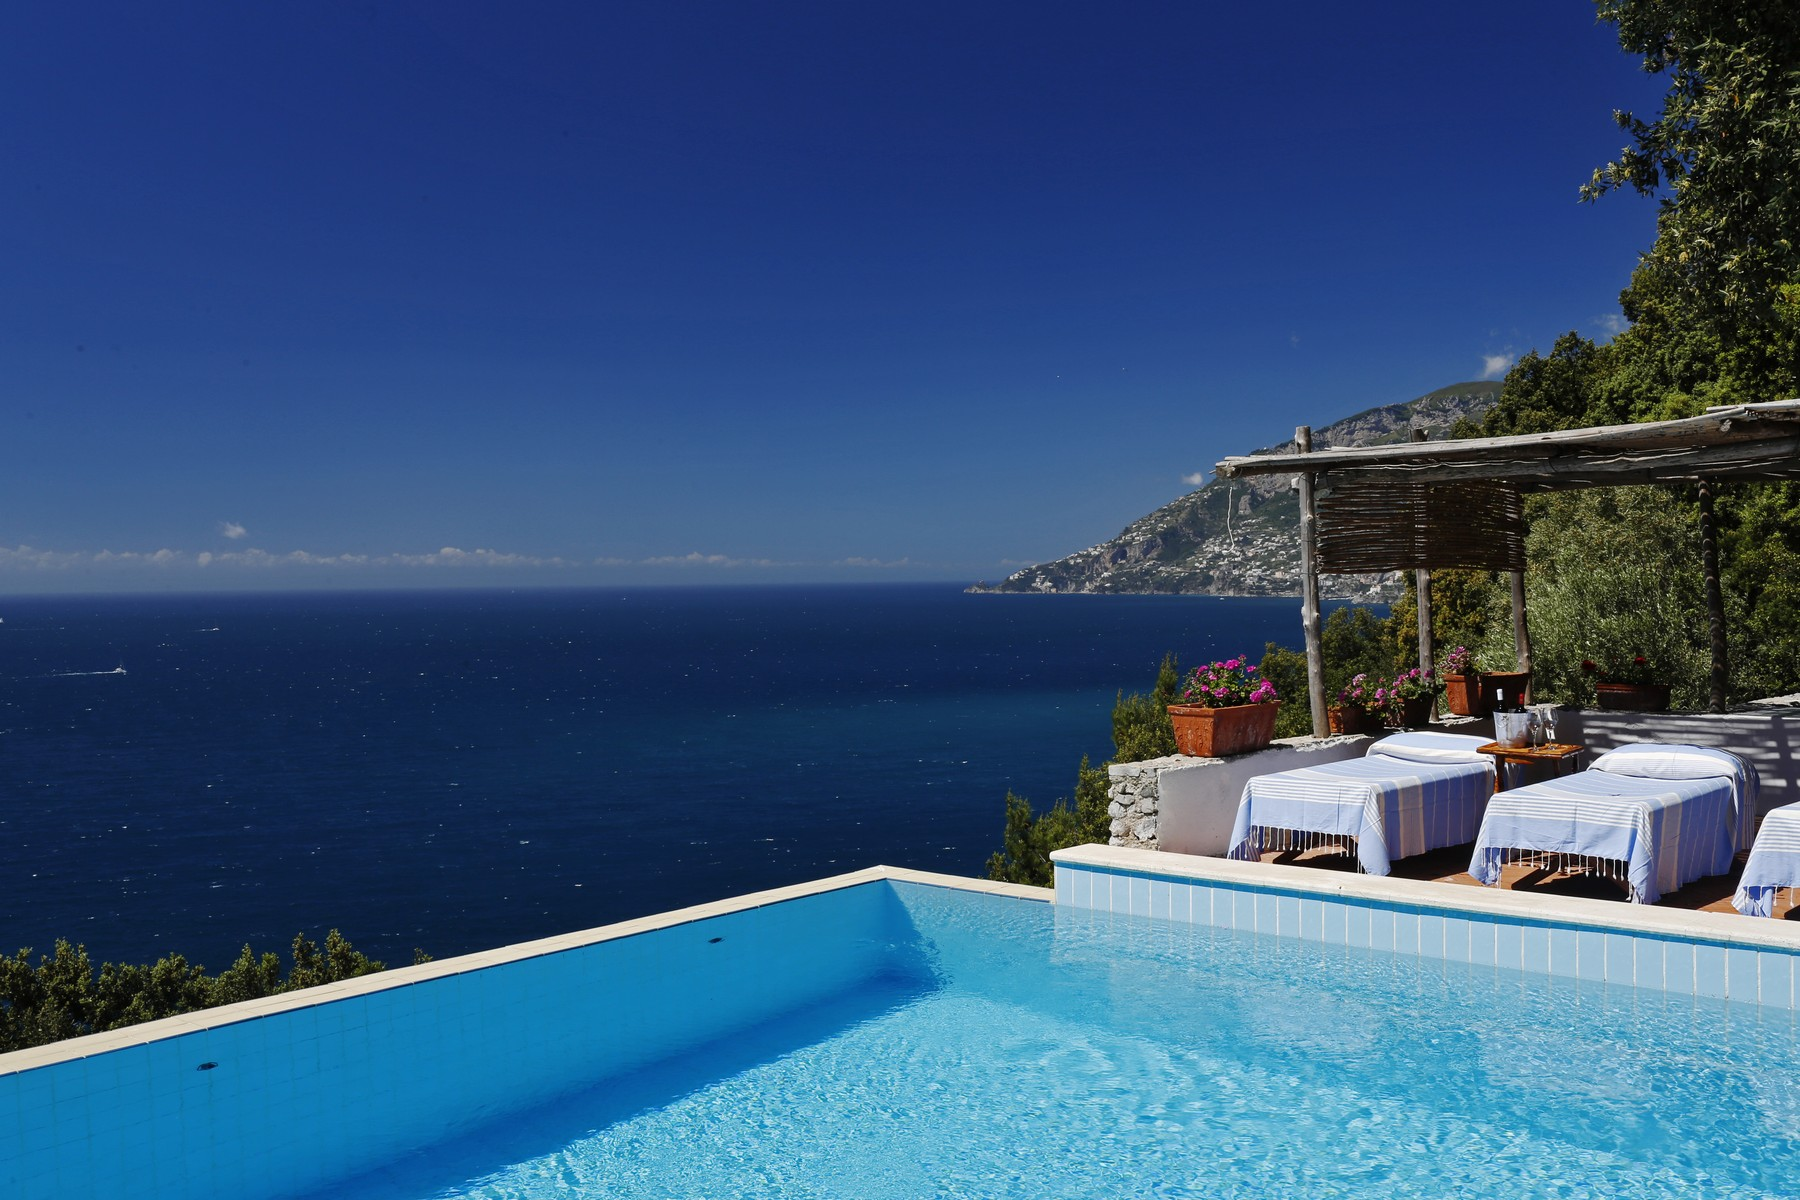 Additional photo for property listing at Villa pied dans l'eau in Amalfi coast  Maiori, Salerno 84100 Italia